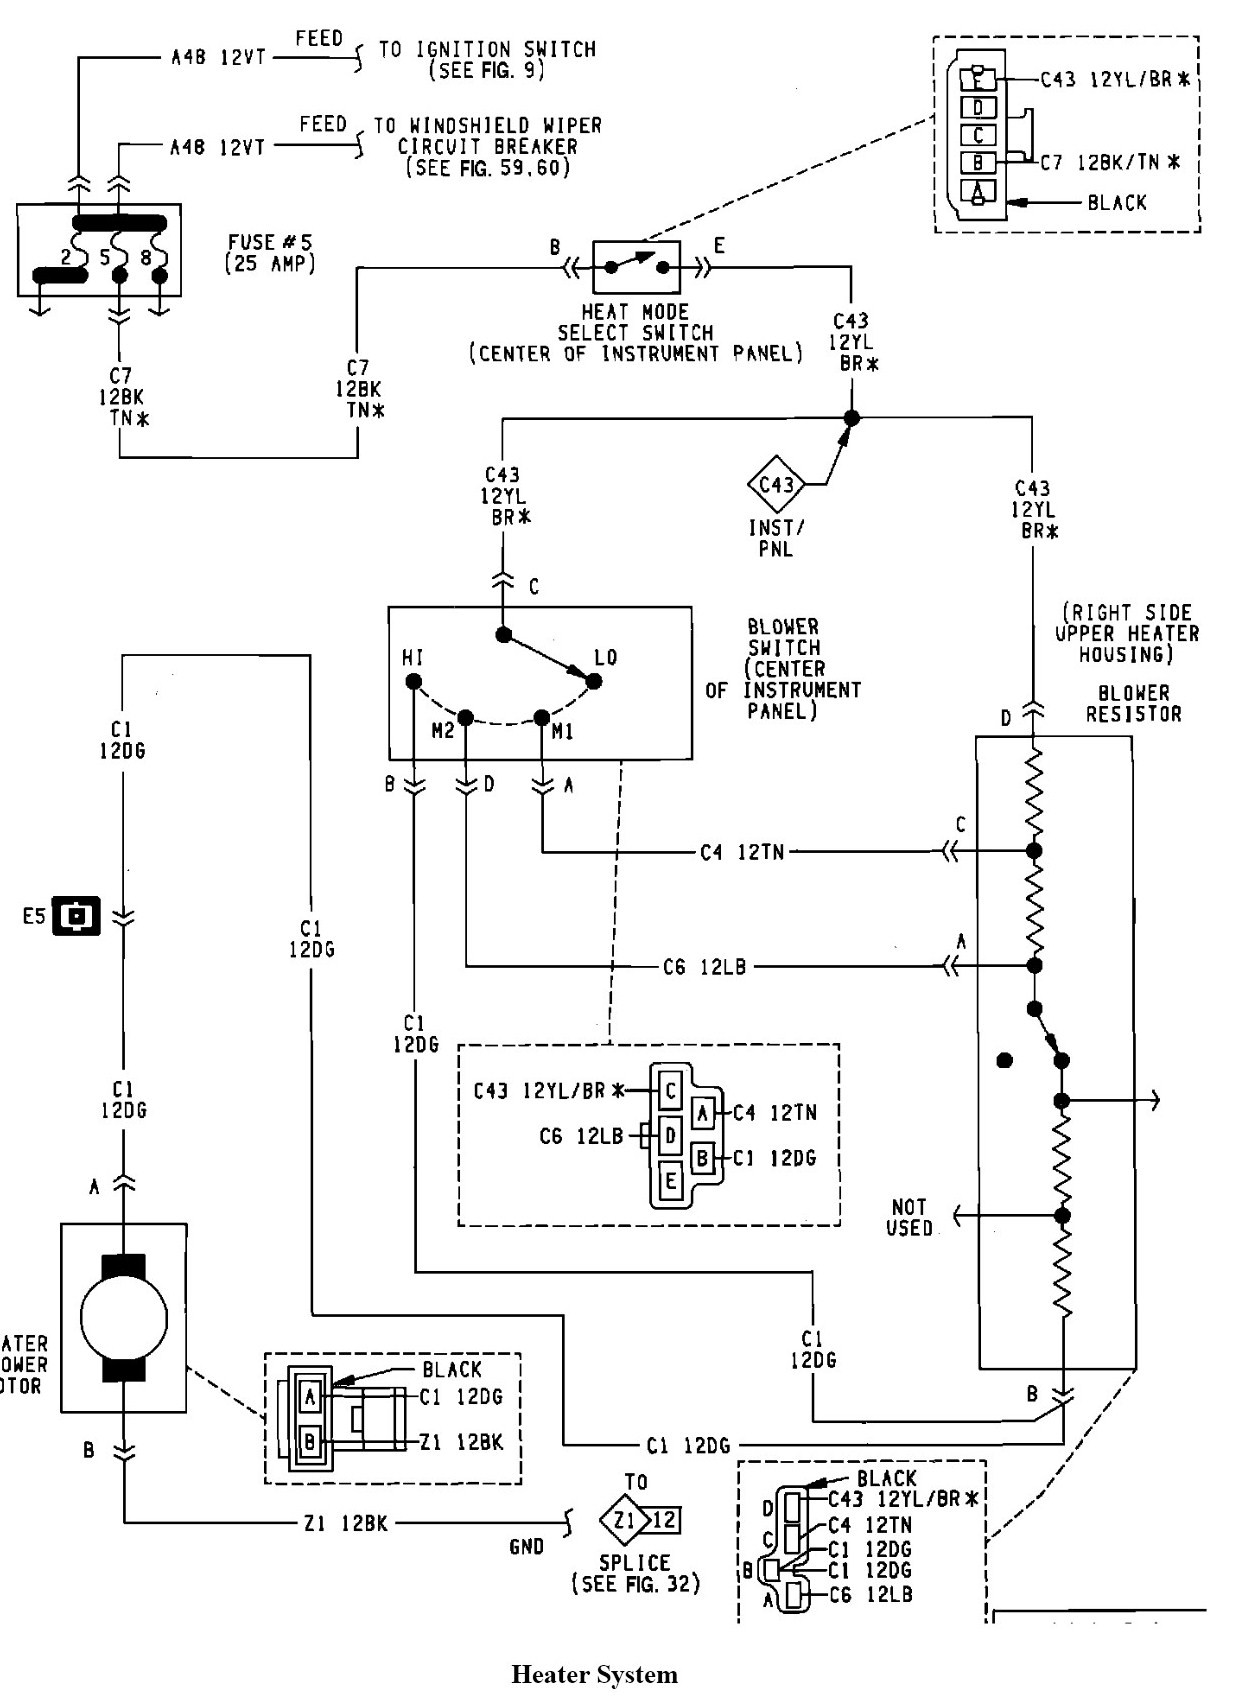 jeep grand cherokee radio wiring zg 7236  95 jeep wrangler radio wiring diagram wiring diagram 2004 jeep grand cherokee radio wiring diagram 95 jeep wrangler radio wiring diagram